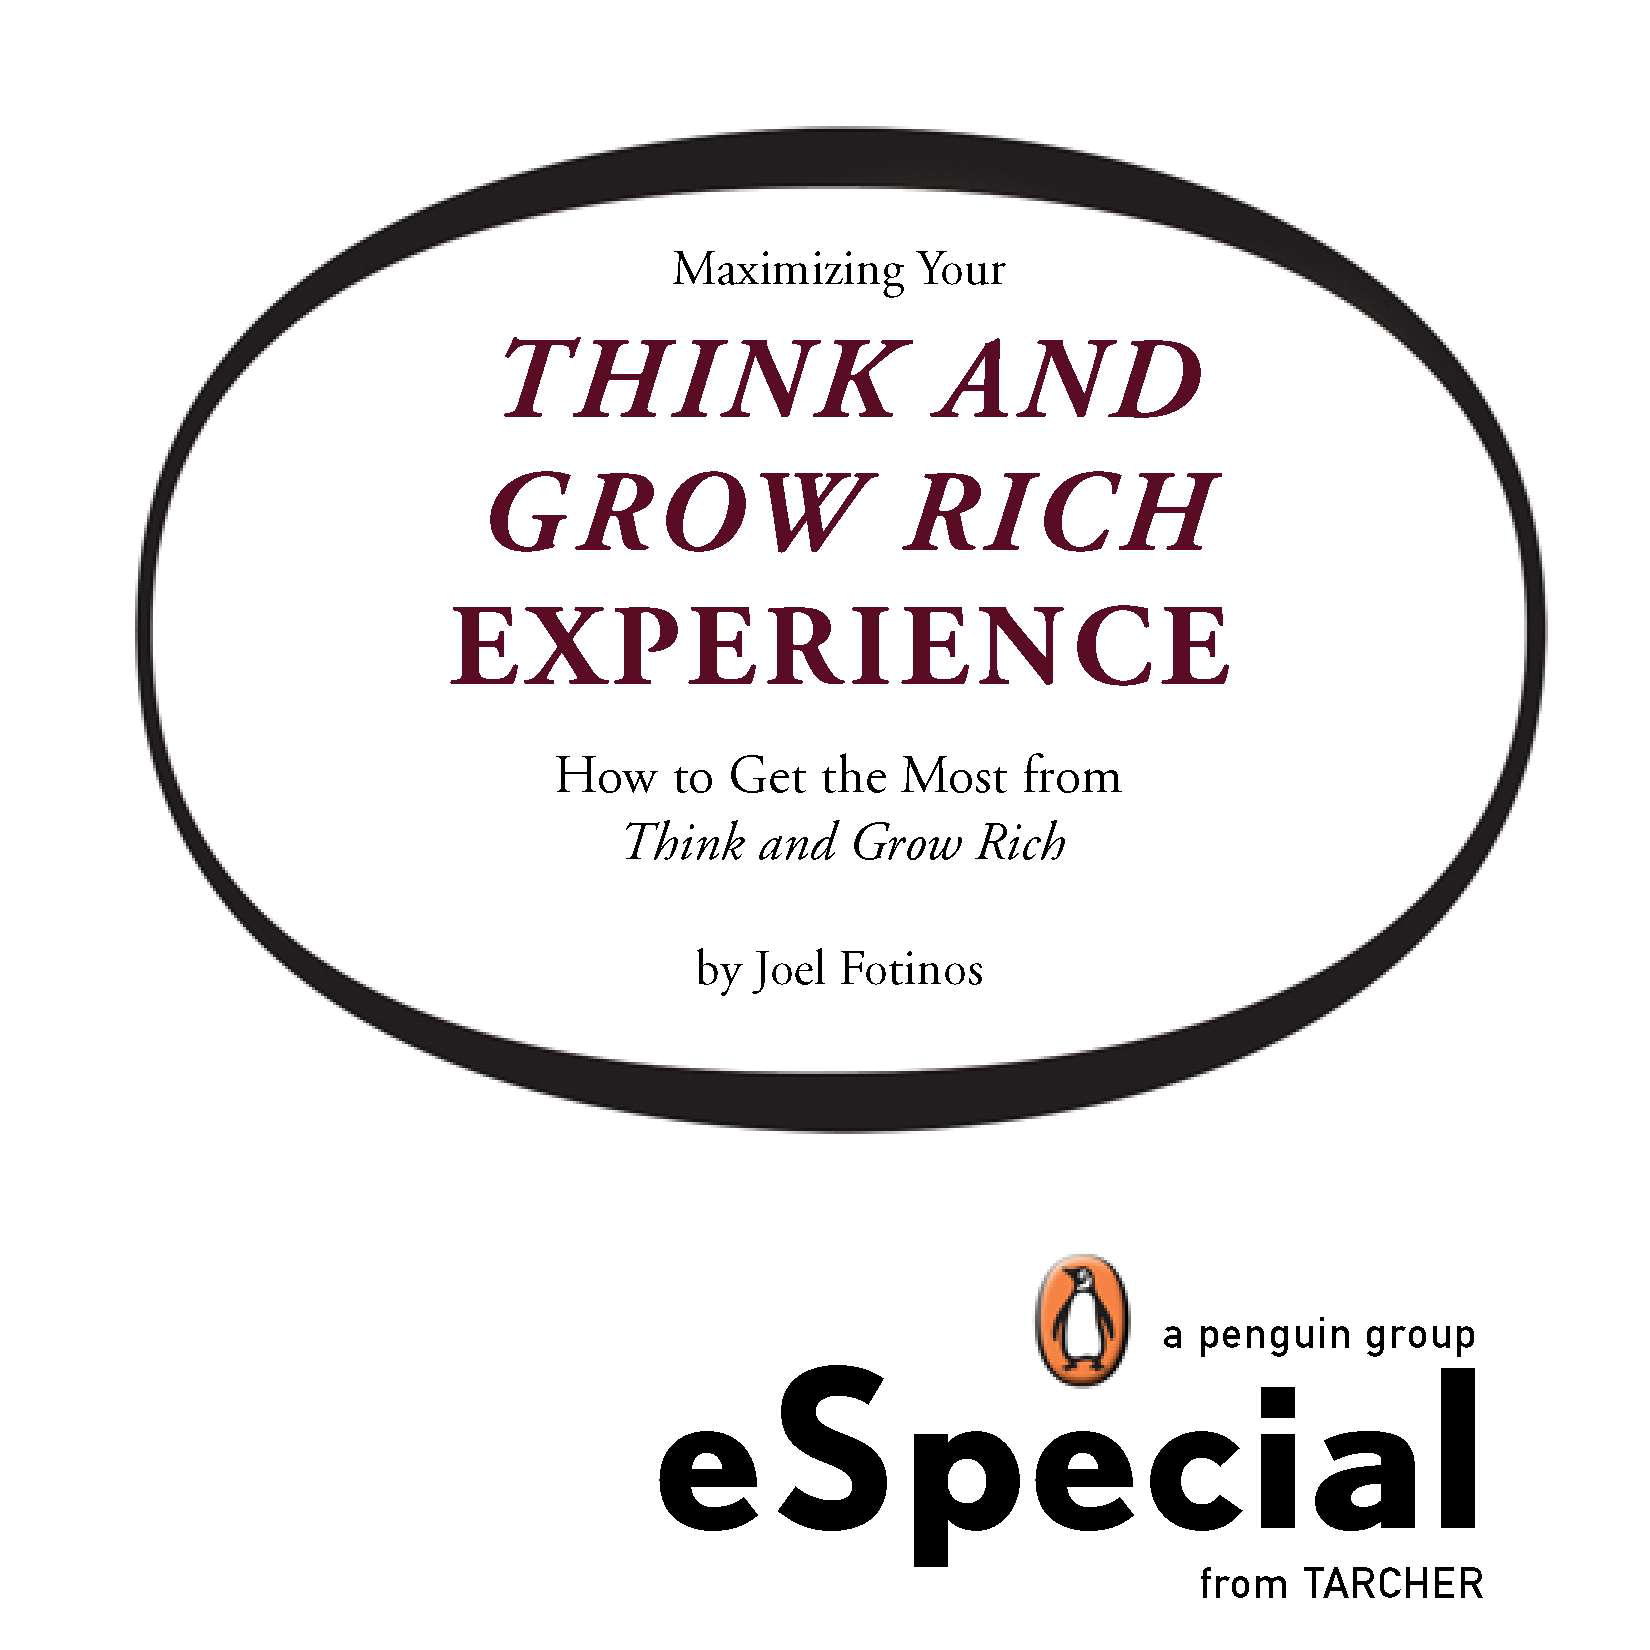 Download Ebook Maximizing Your Think and Grow Rich Experience by Joel Fotinos Pdf